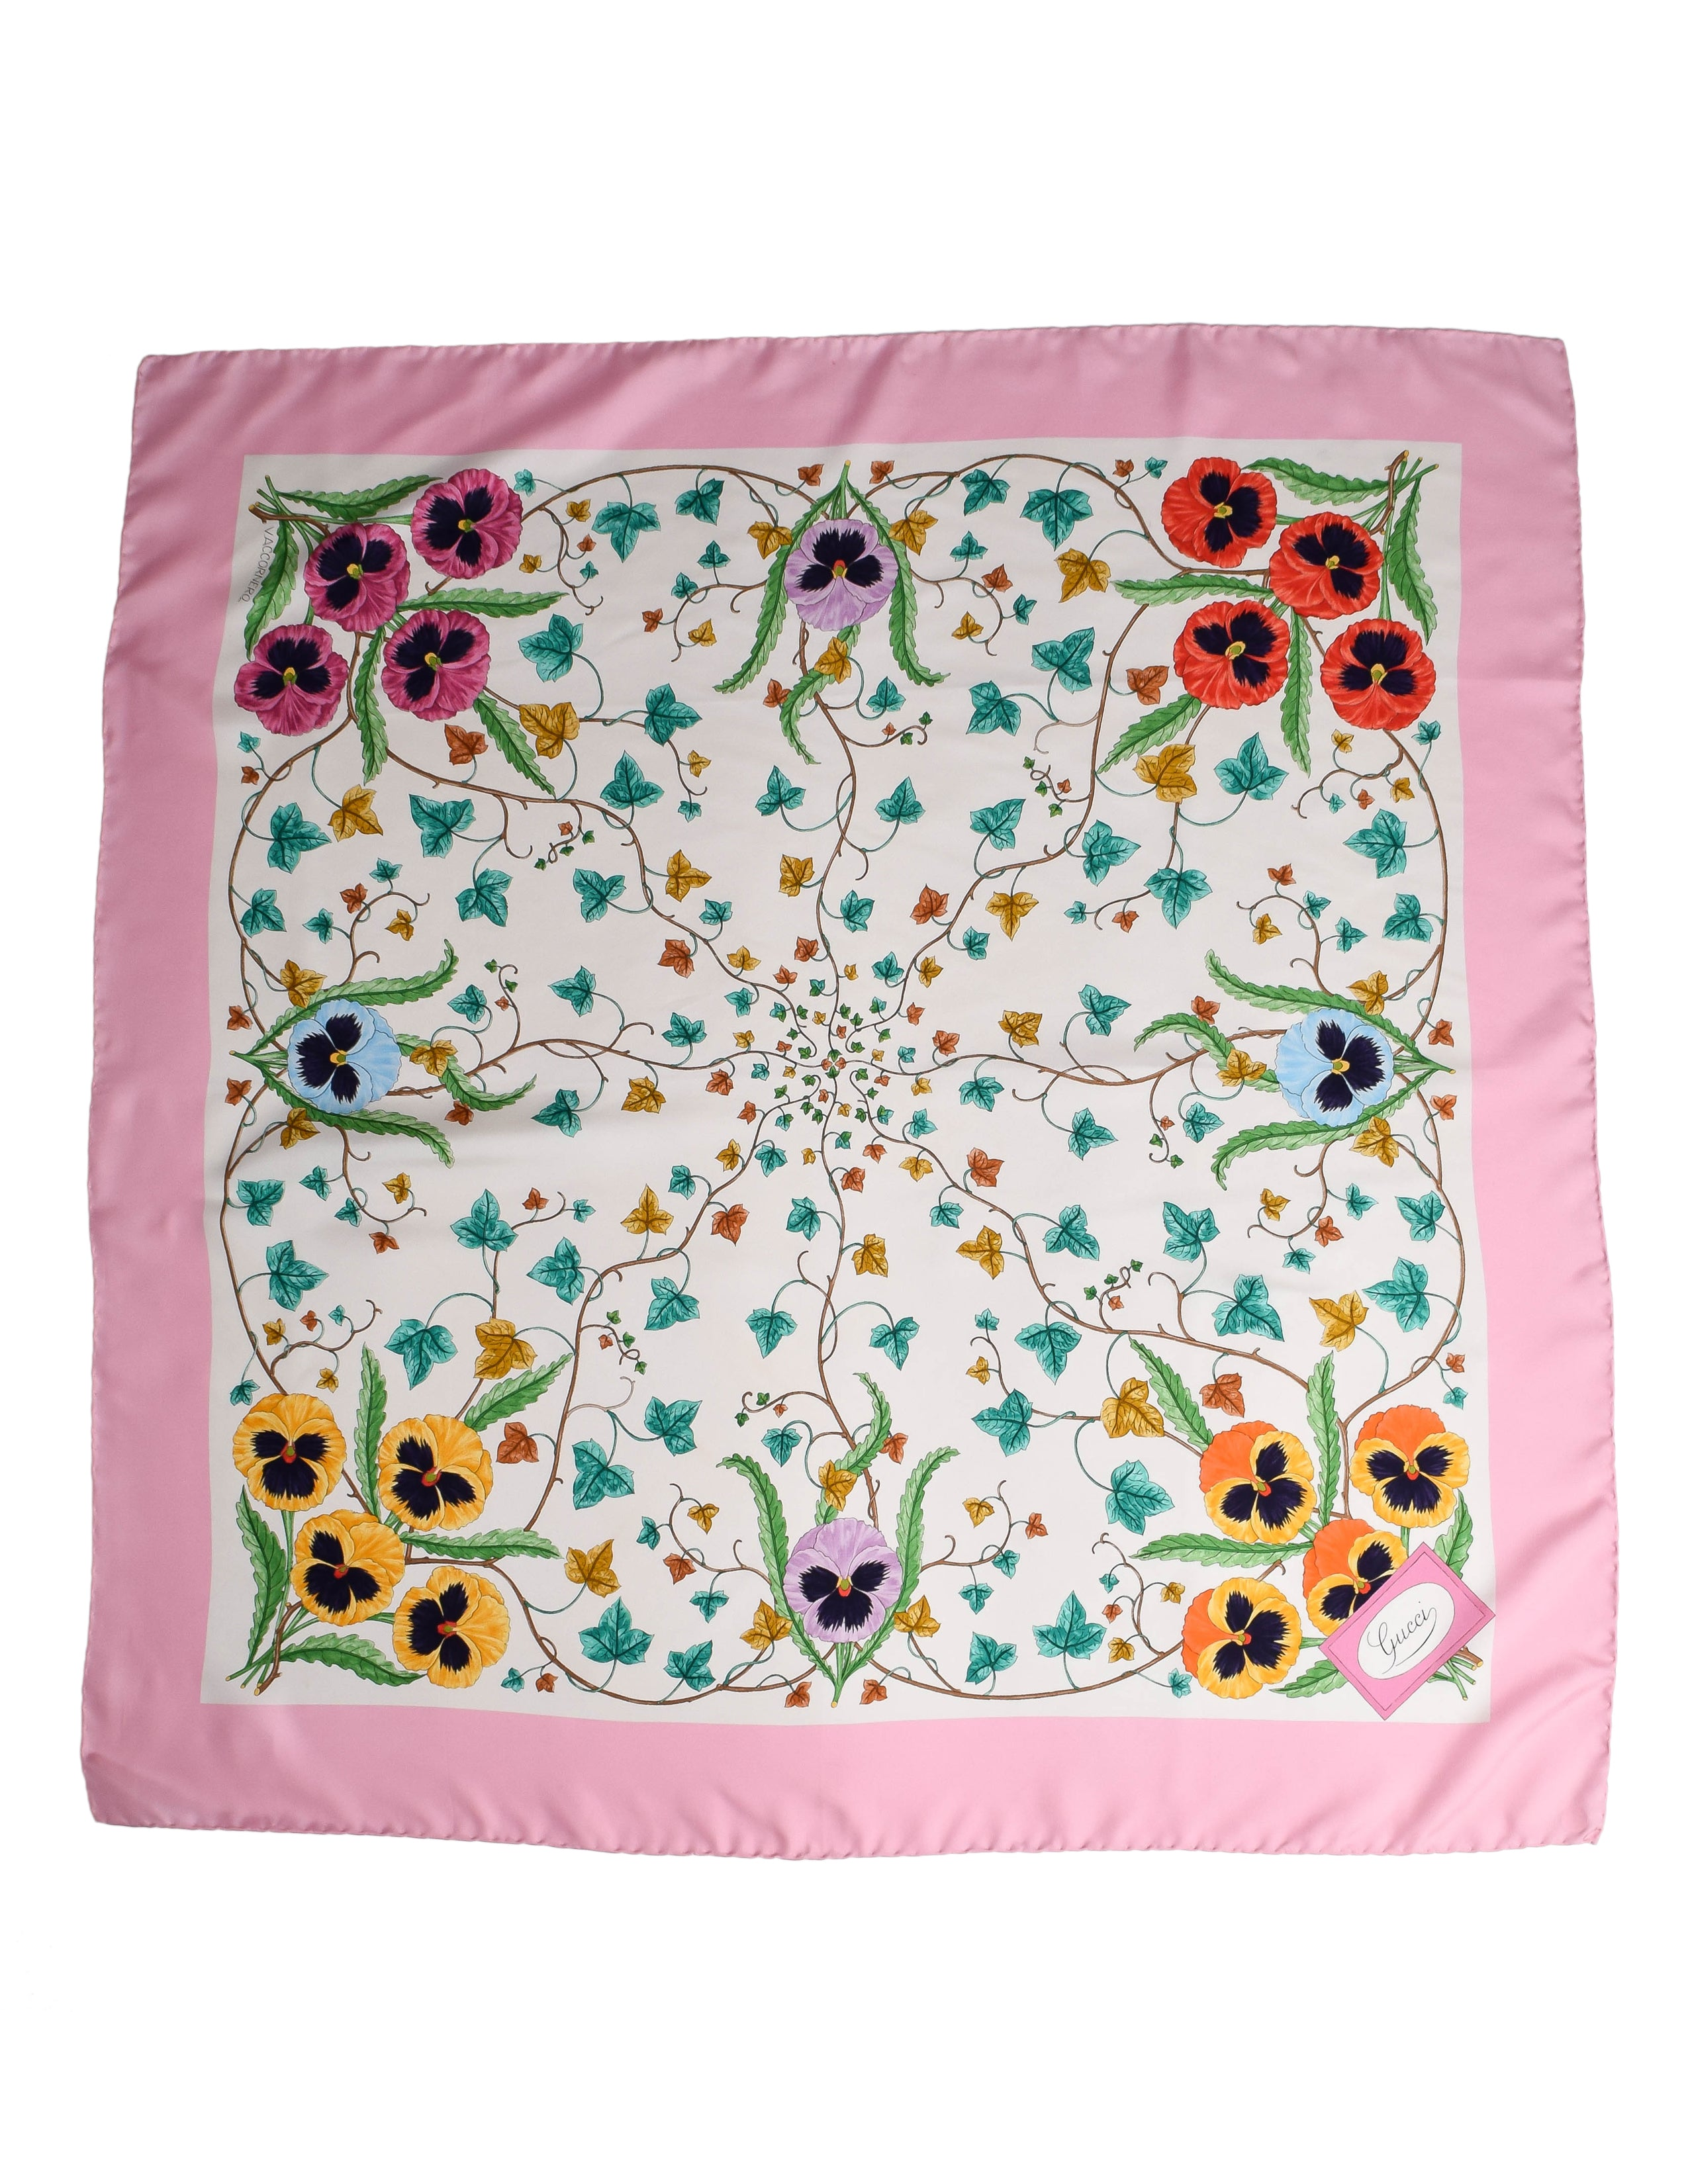 Gucci Vintage Iconic Flora Floral Silk Scarf